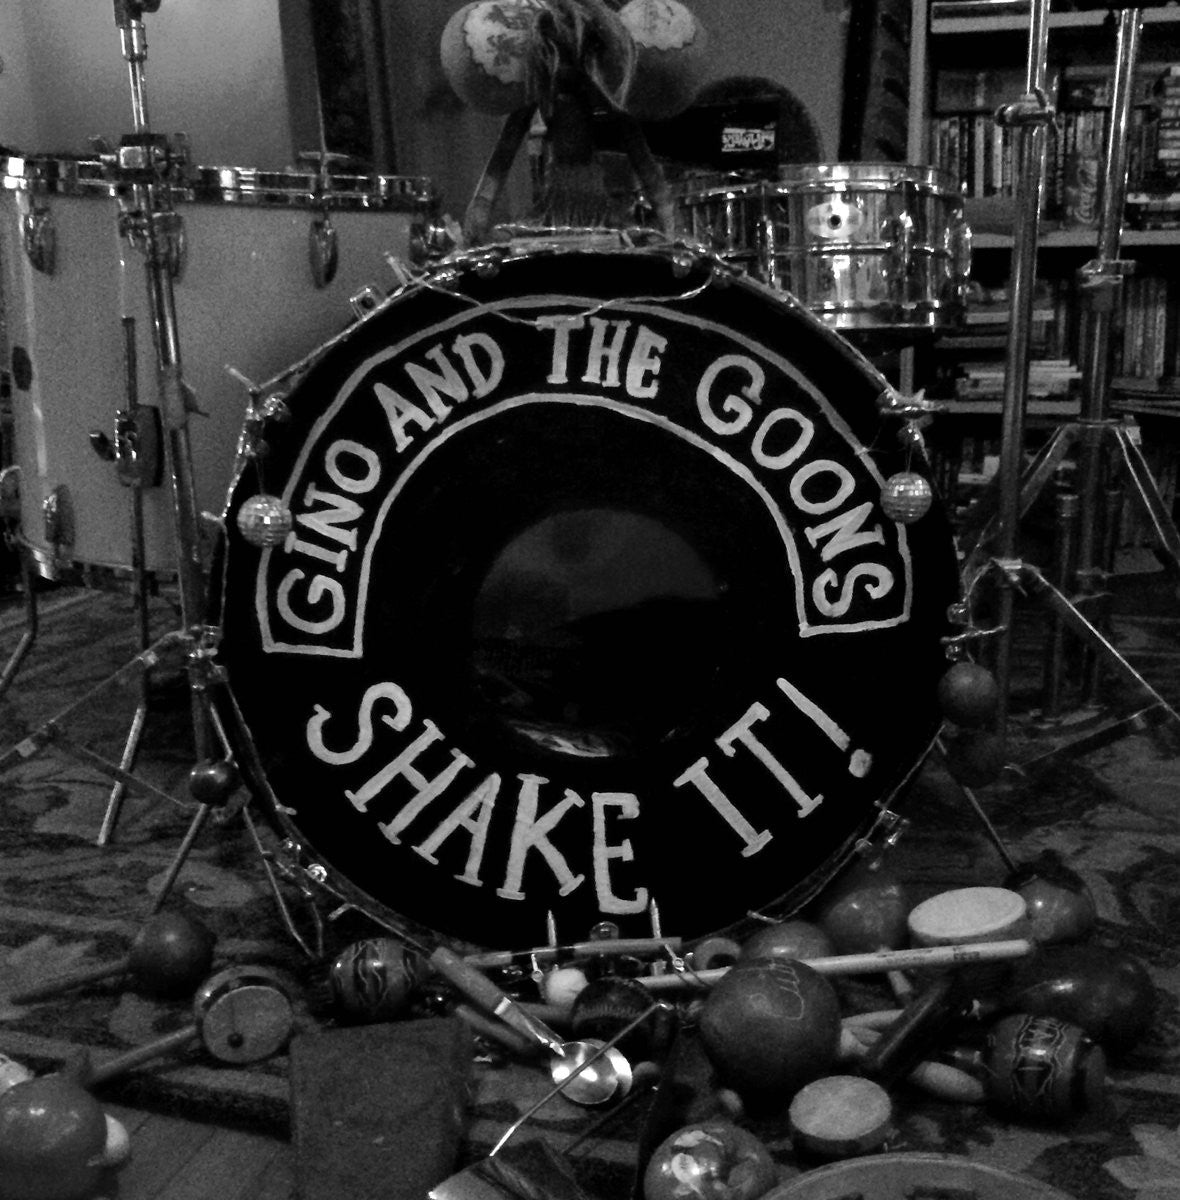 Gino and the Goons - Shake It LP